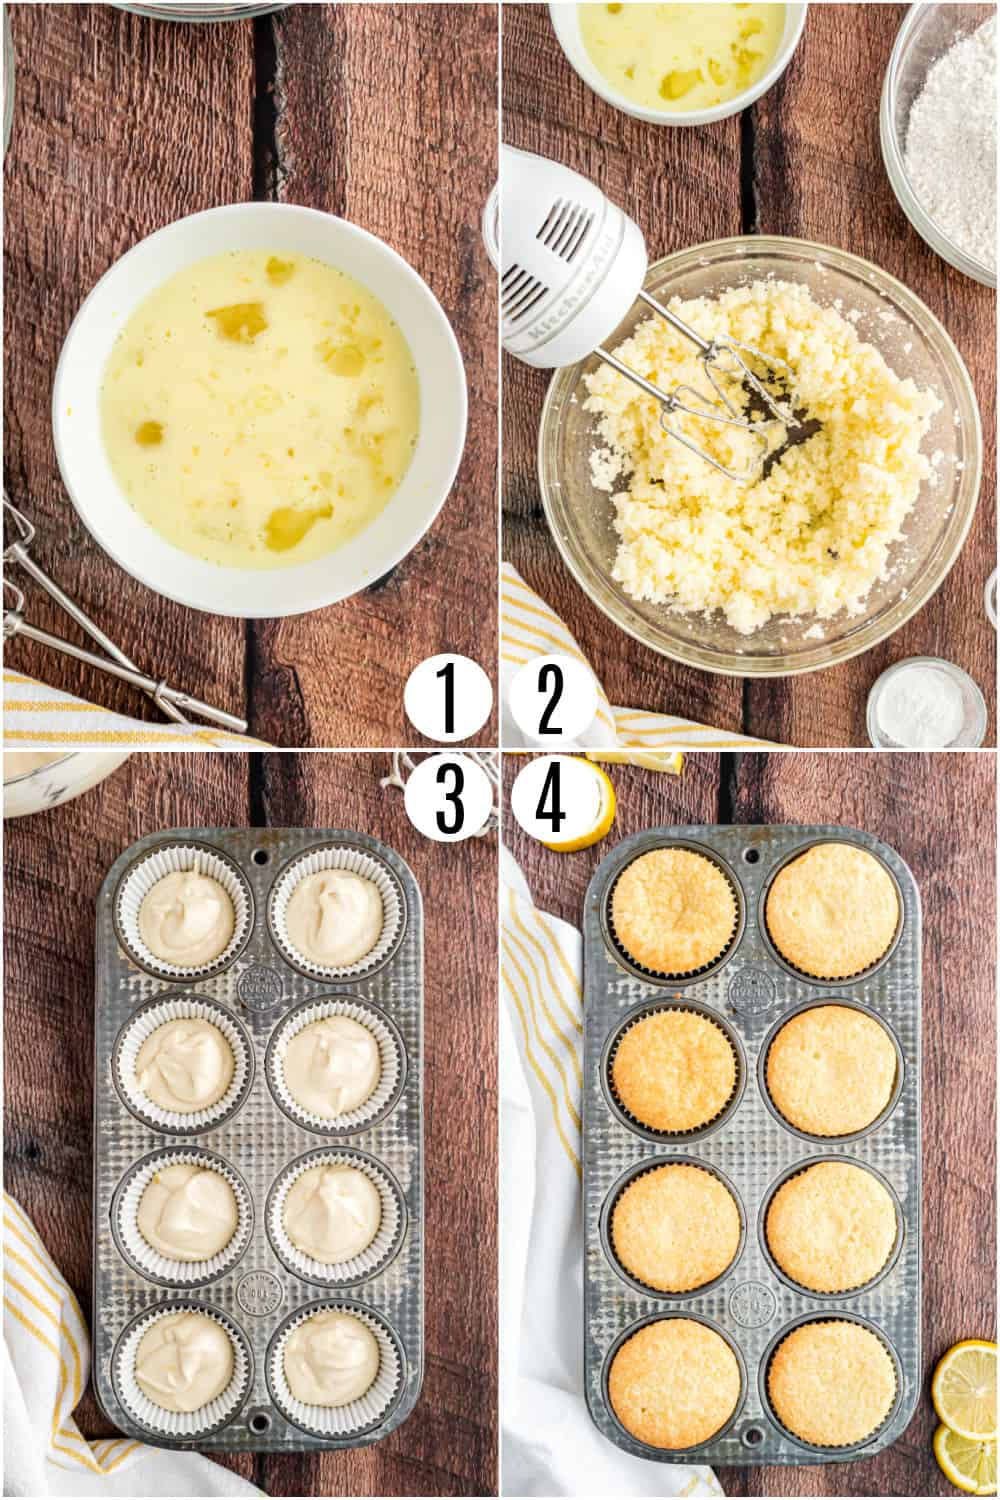 Step by step photos showing how to make lemon cupcakes.